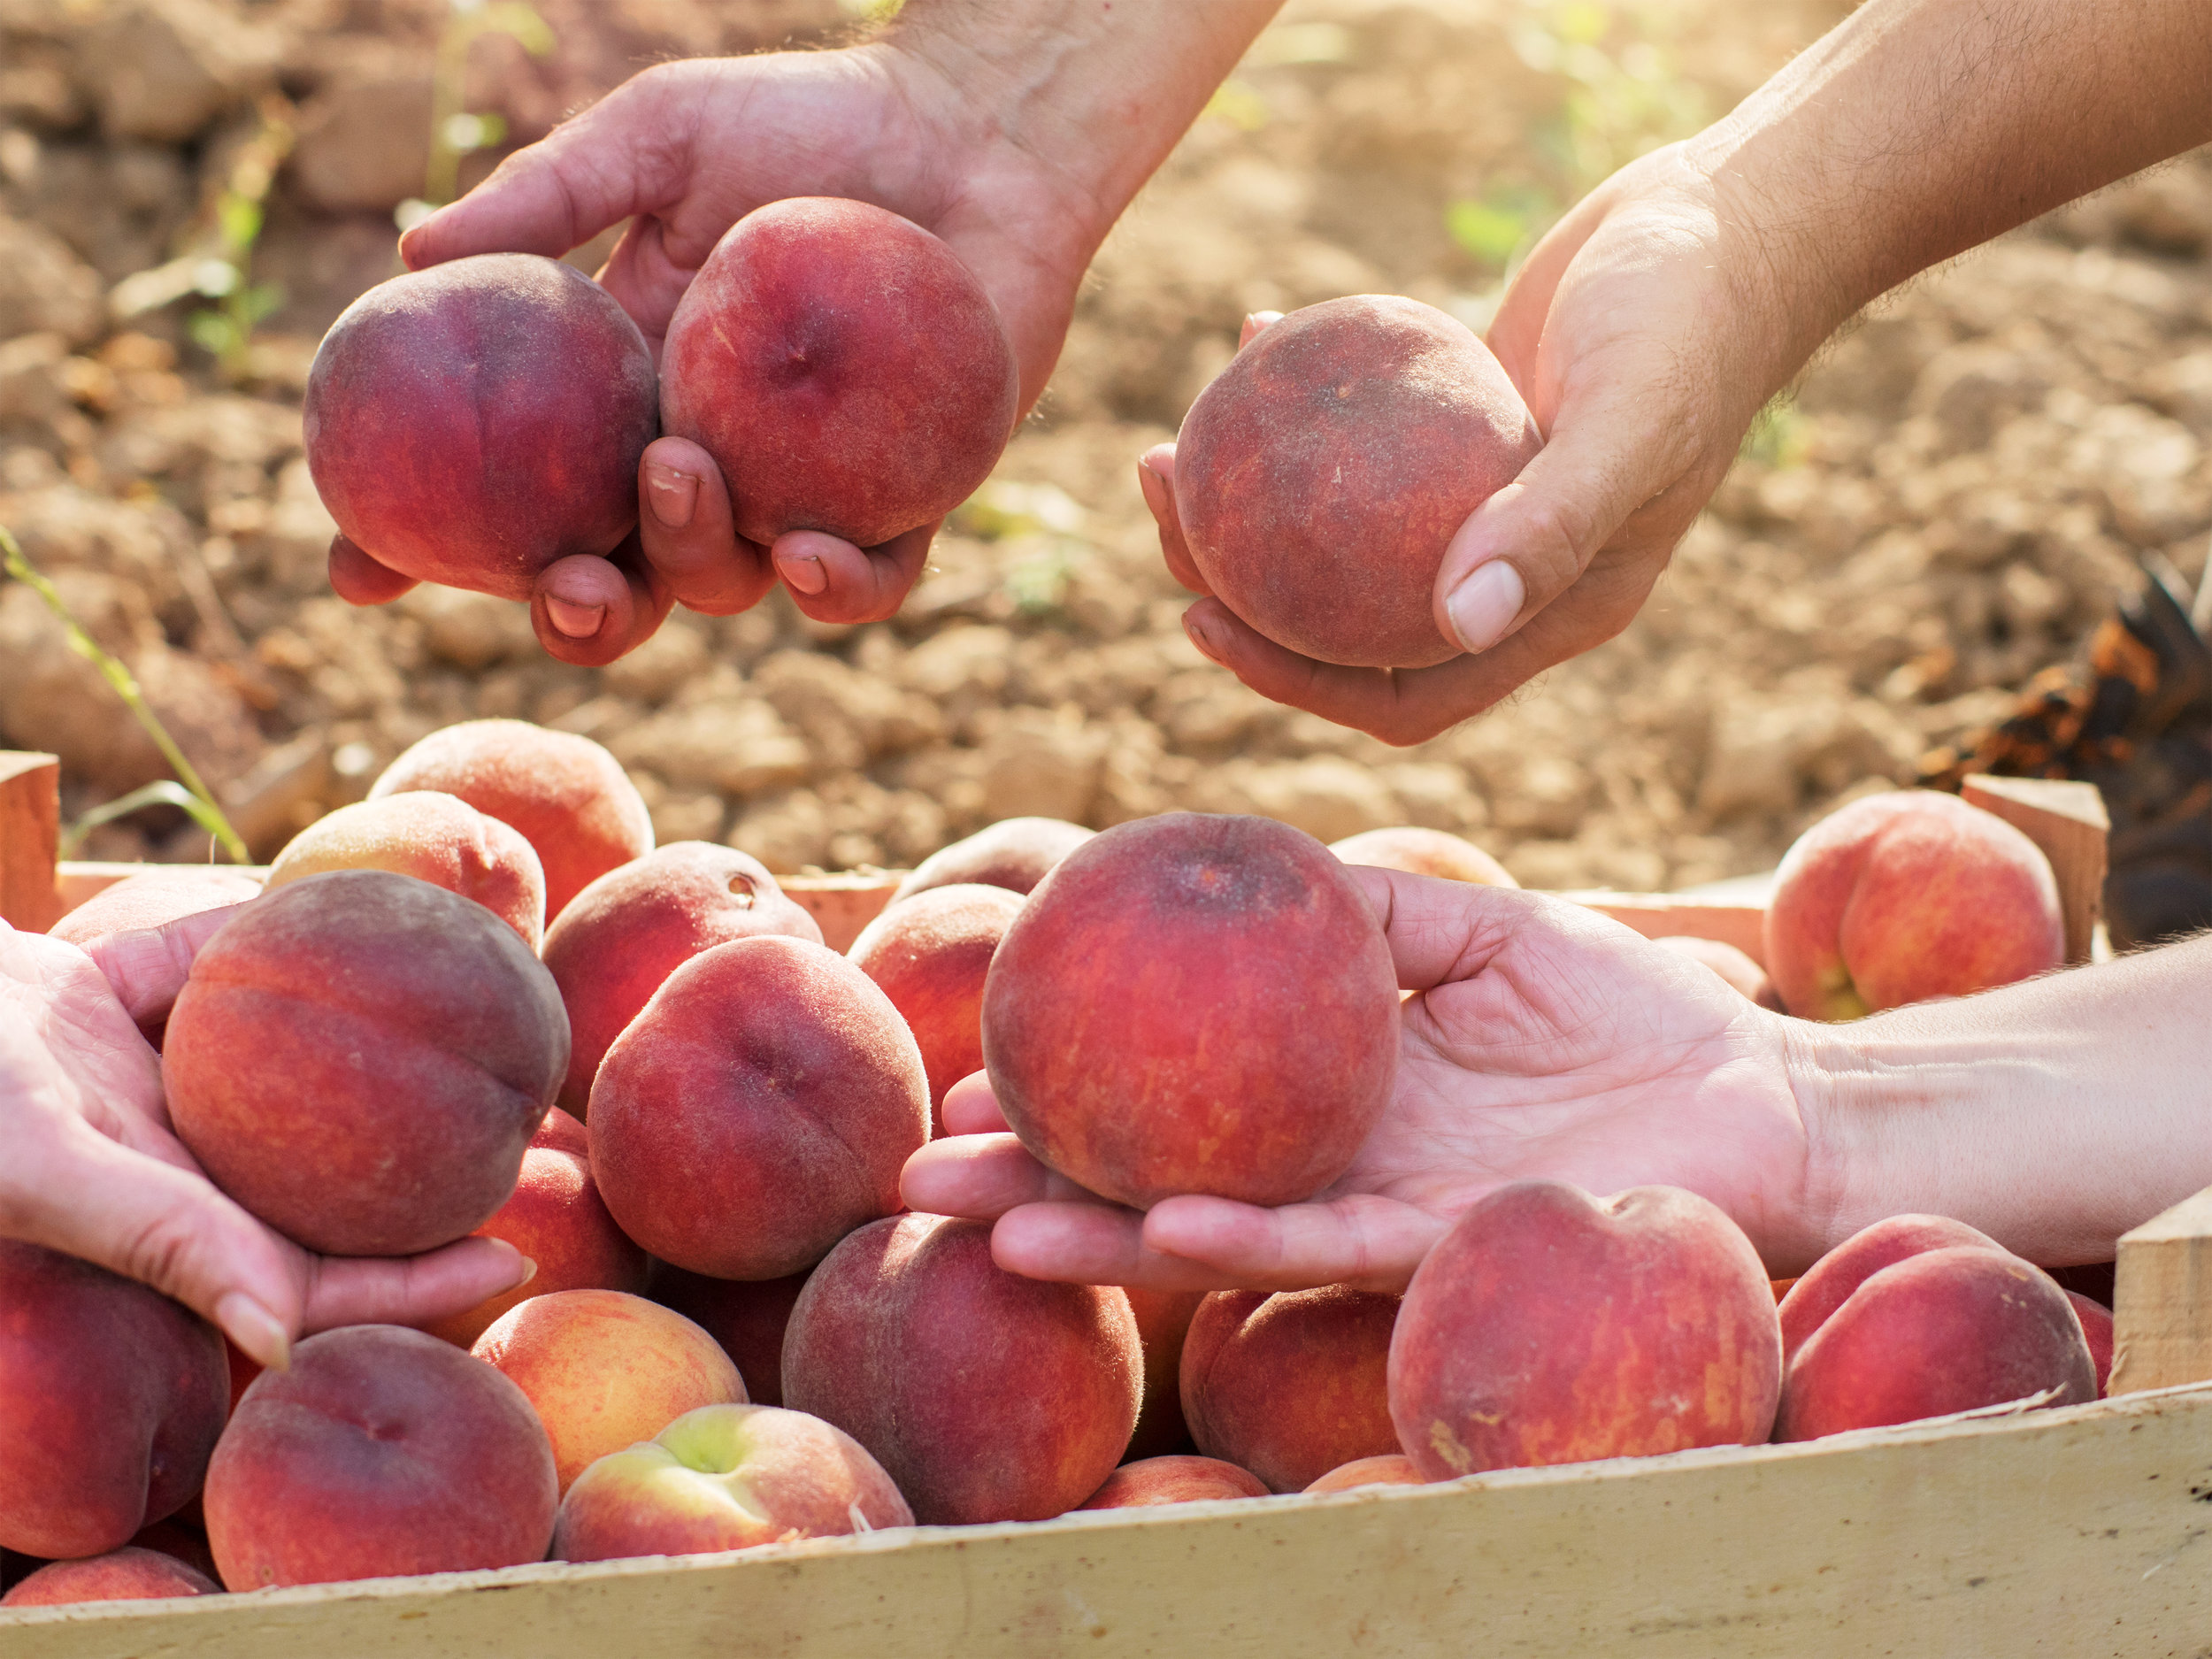 Our Peaches - Blazing Star, Blushing Star, Rising star & Flaming Fury.Our peaches' first harvest came early for us in 2018, so this year we are looking forward to what they have in store for us! The taste and quality were out of this world. Stay tuned for where to get our peaches this summer!